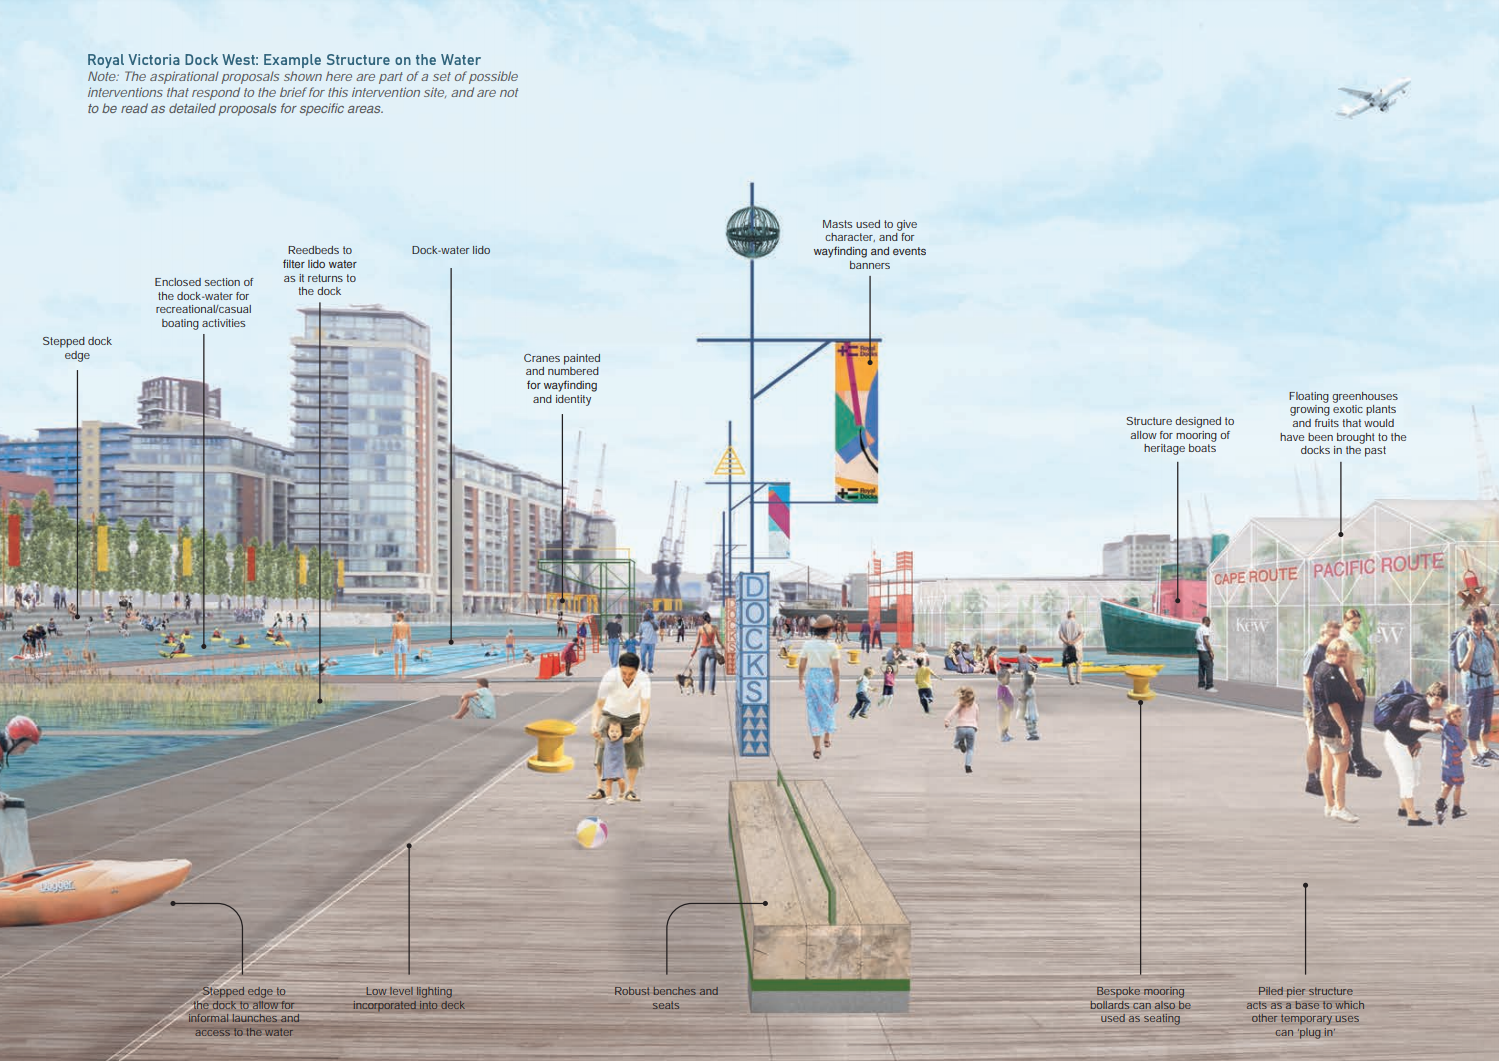 An image from the Royal Docks Public Realm Framework